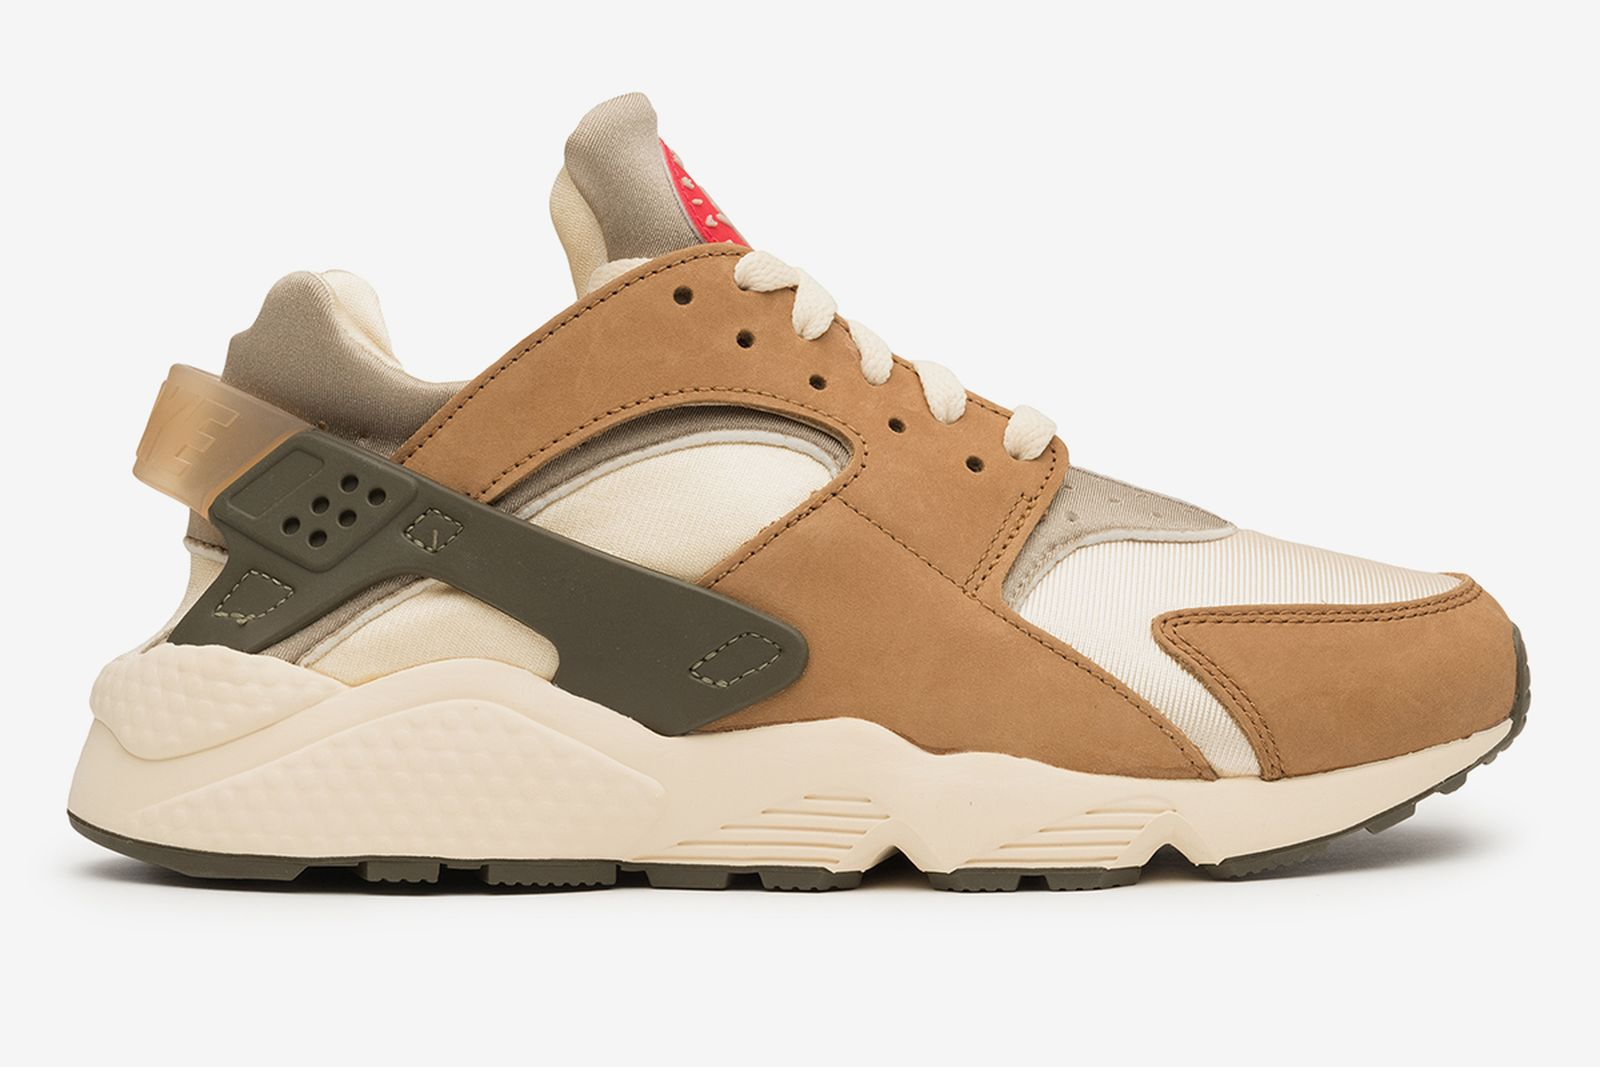 stussy-nike-huarache-le-ss21-release-date-price-1-12